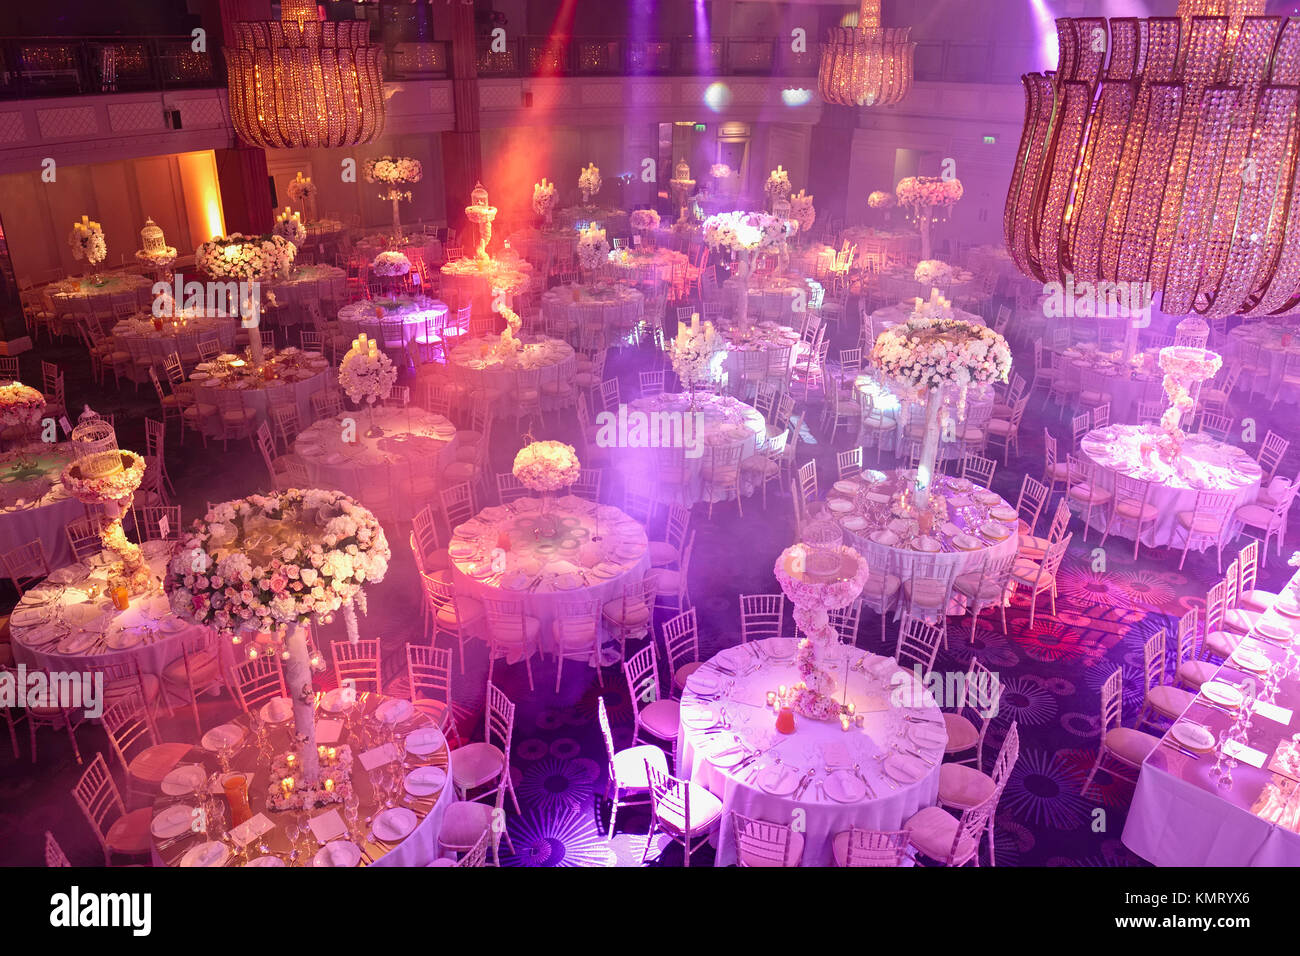 Table decorations at high end hotel wedding reception event Stock ...